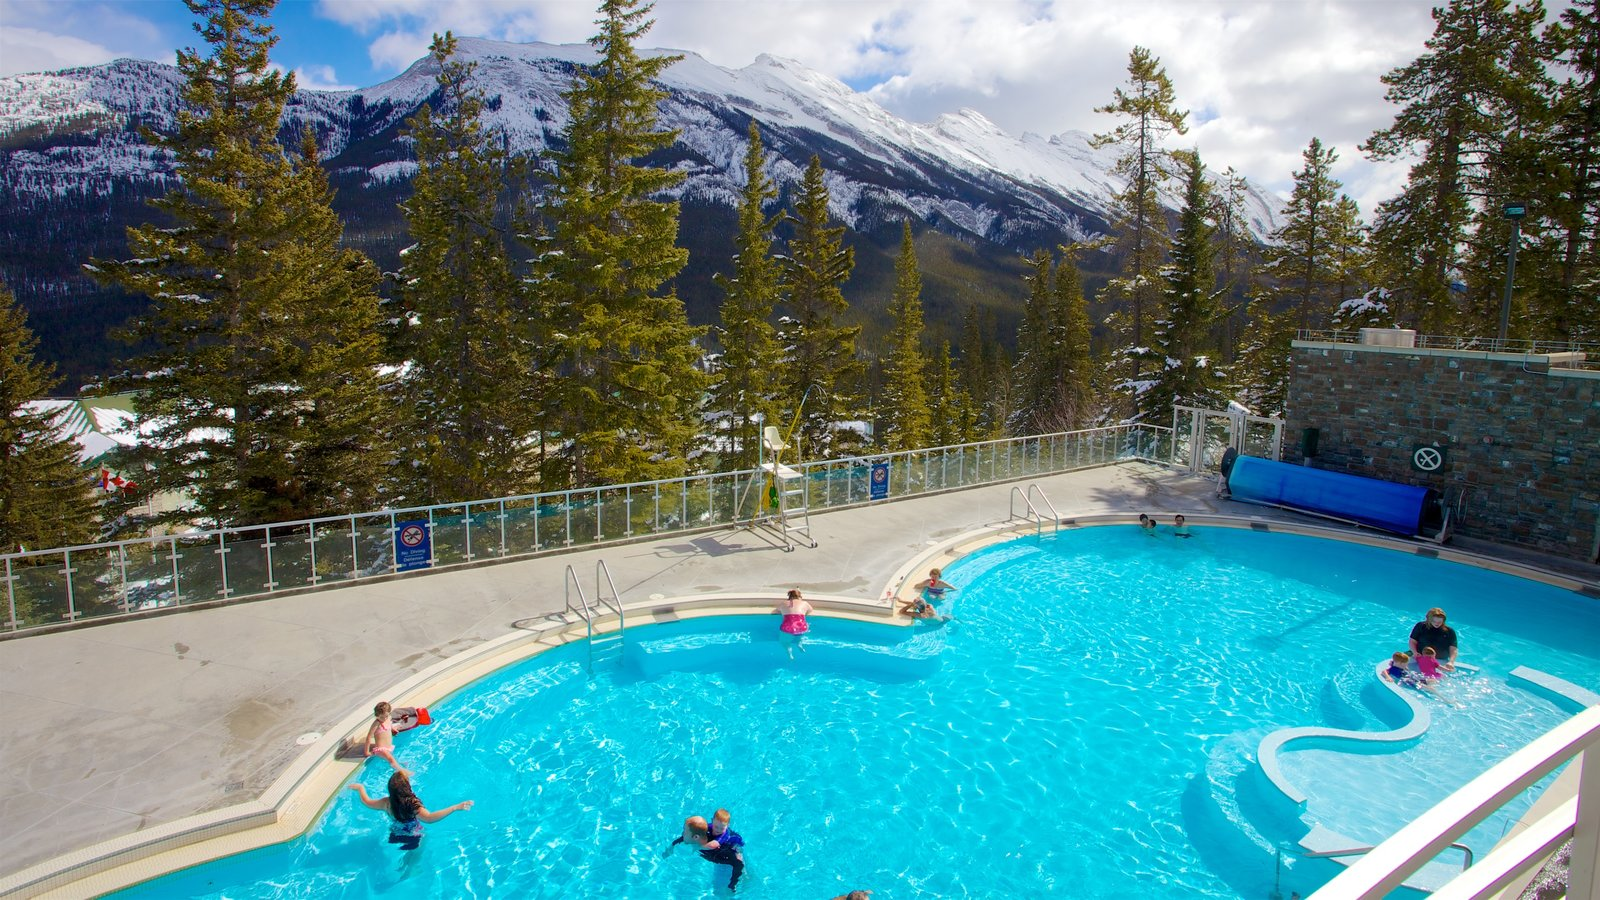 Calgary which includes a pool and tranquil scenes as well as children